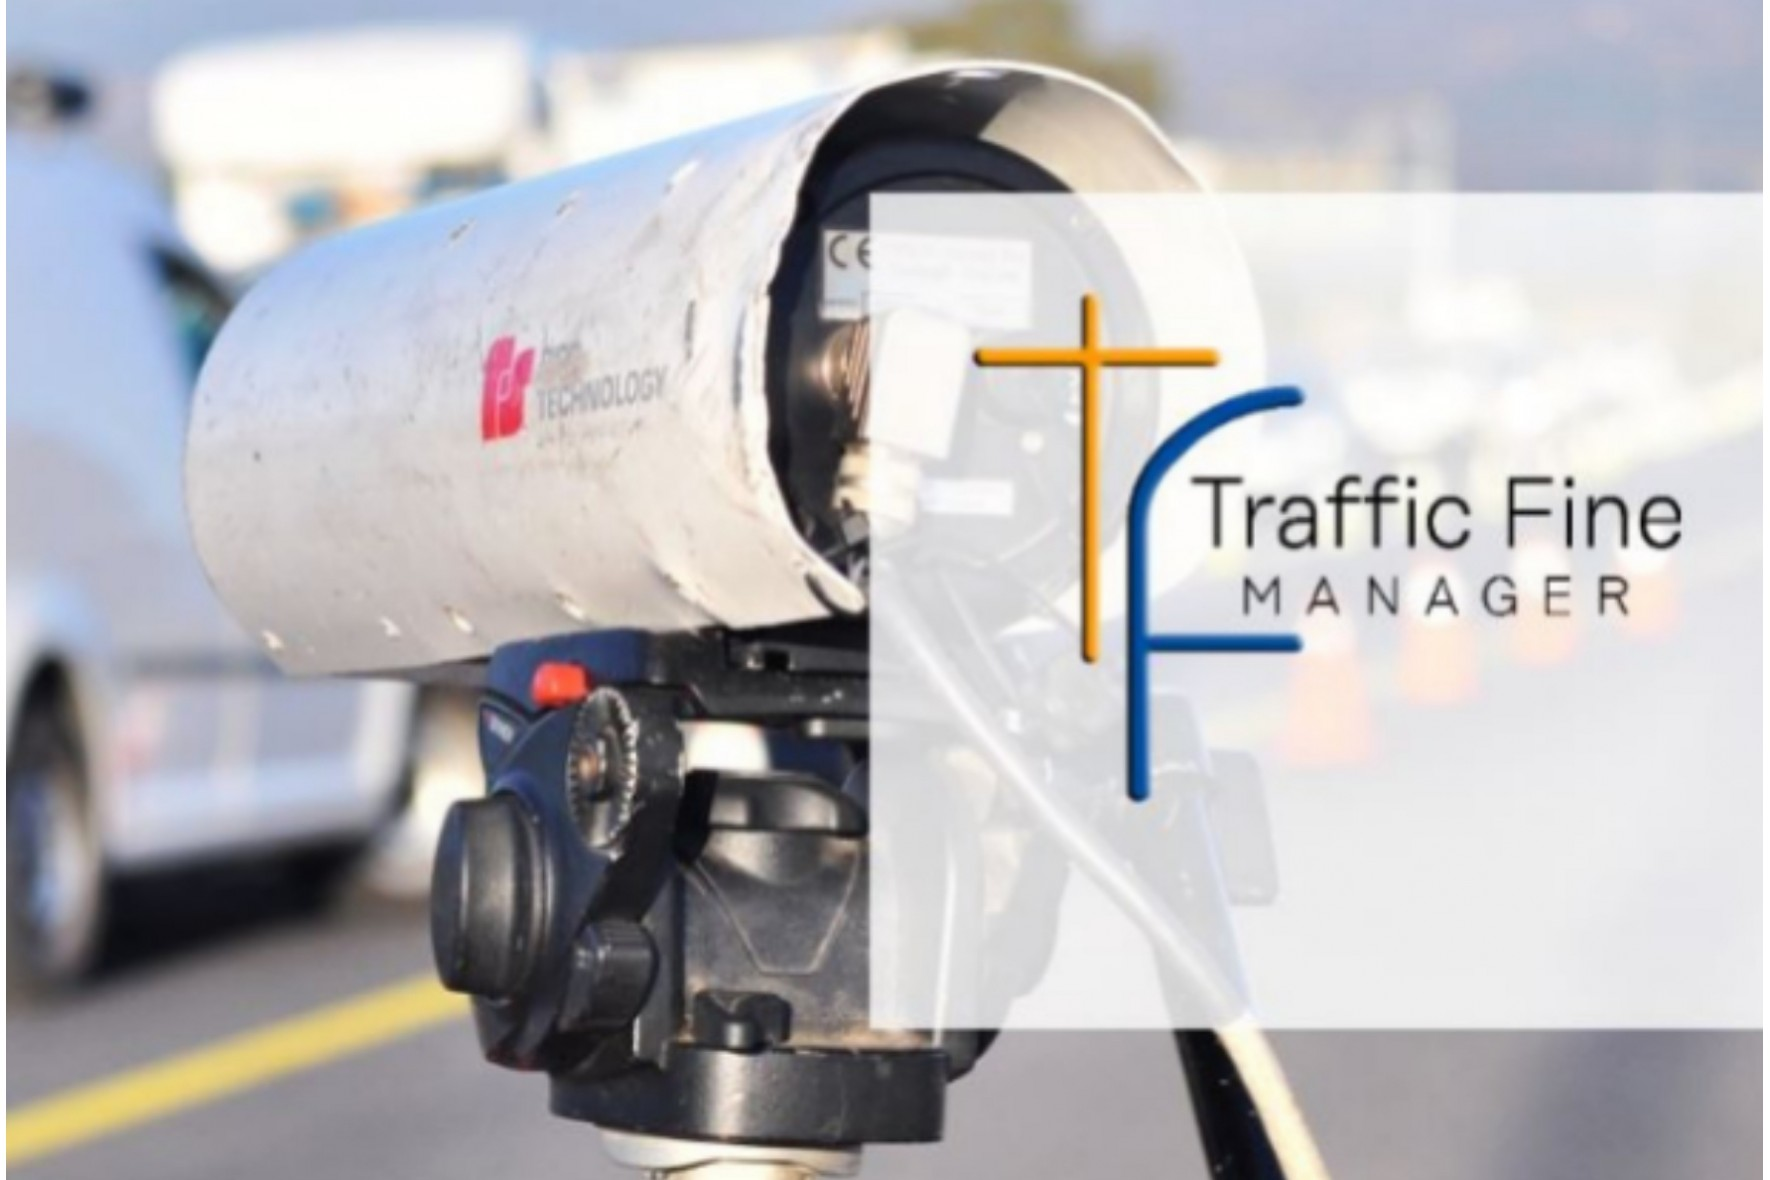 Manage your traffic fines